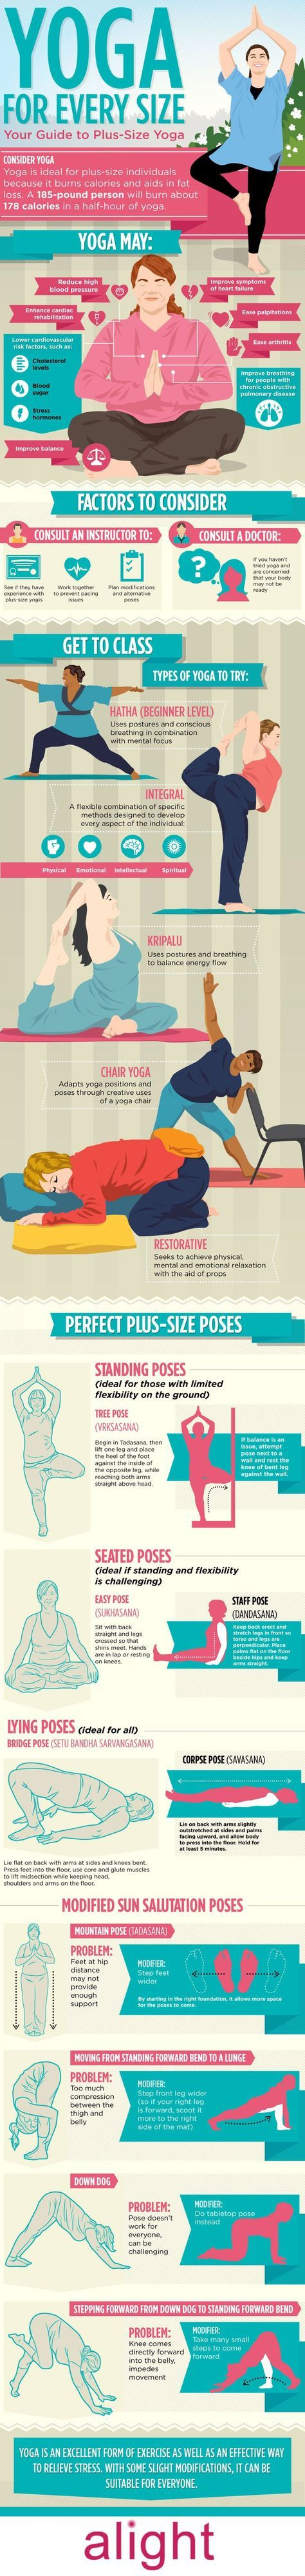 Infographic: Yoga for Every Size - Guide to Plus Size Yoga